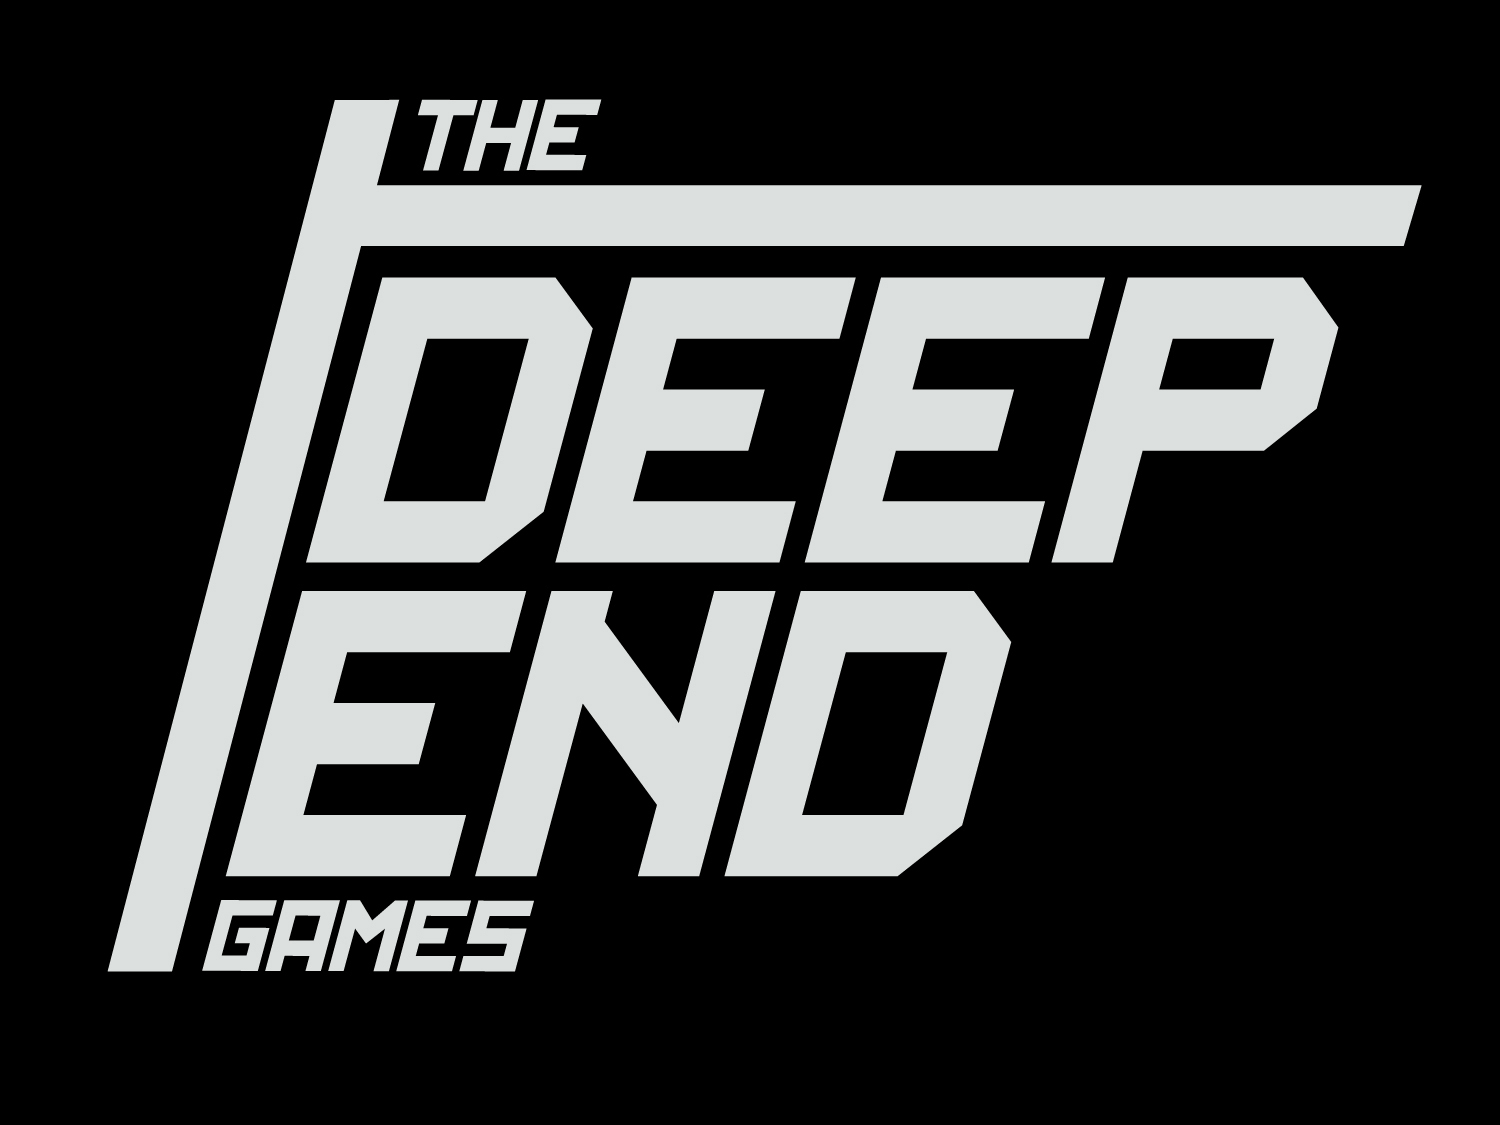 - The Deep End Games is an indie video game developer with AAA pedigree. Amanda and Bill Gardner started the studio out of their basement and the couple's debut title Perception garnered a number of awards, including The Bit Awards' Game of the Year and Boston FIG's Best in Show. Perception is a narrative thriller about a blind woman's search for answers inside the mansion that haunts her nightmares. Perception is available now for Nintendo Switch, Playstation 4, Xbox One, and Steam.